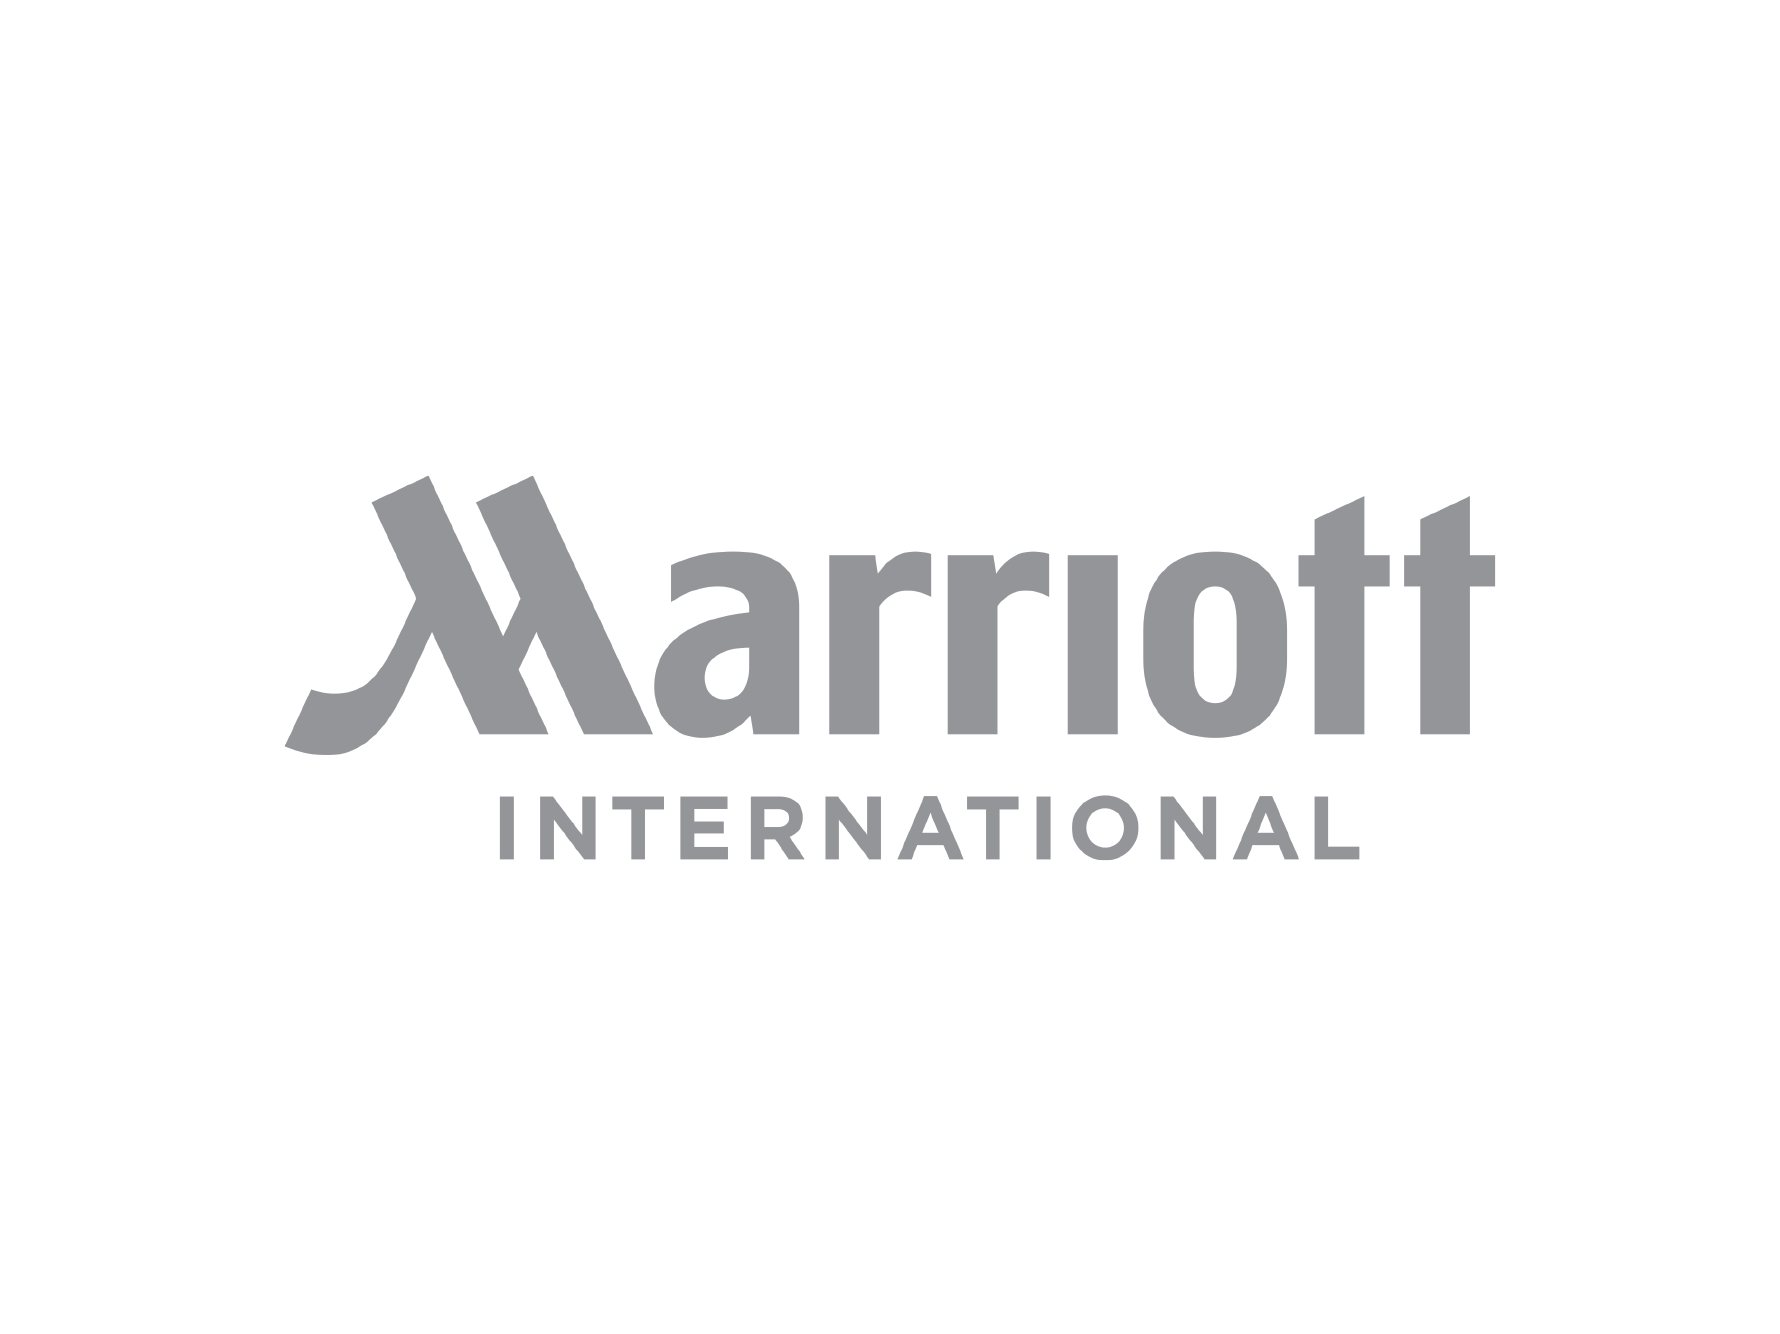 ROCK-0019 RTRX Website Sponsor Page Logos_Leadership_Marriott_v1a.png